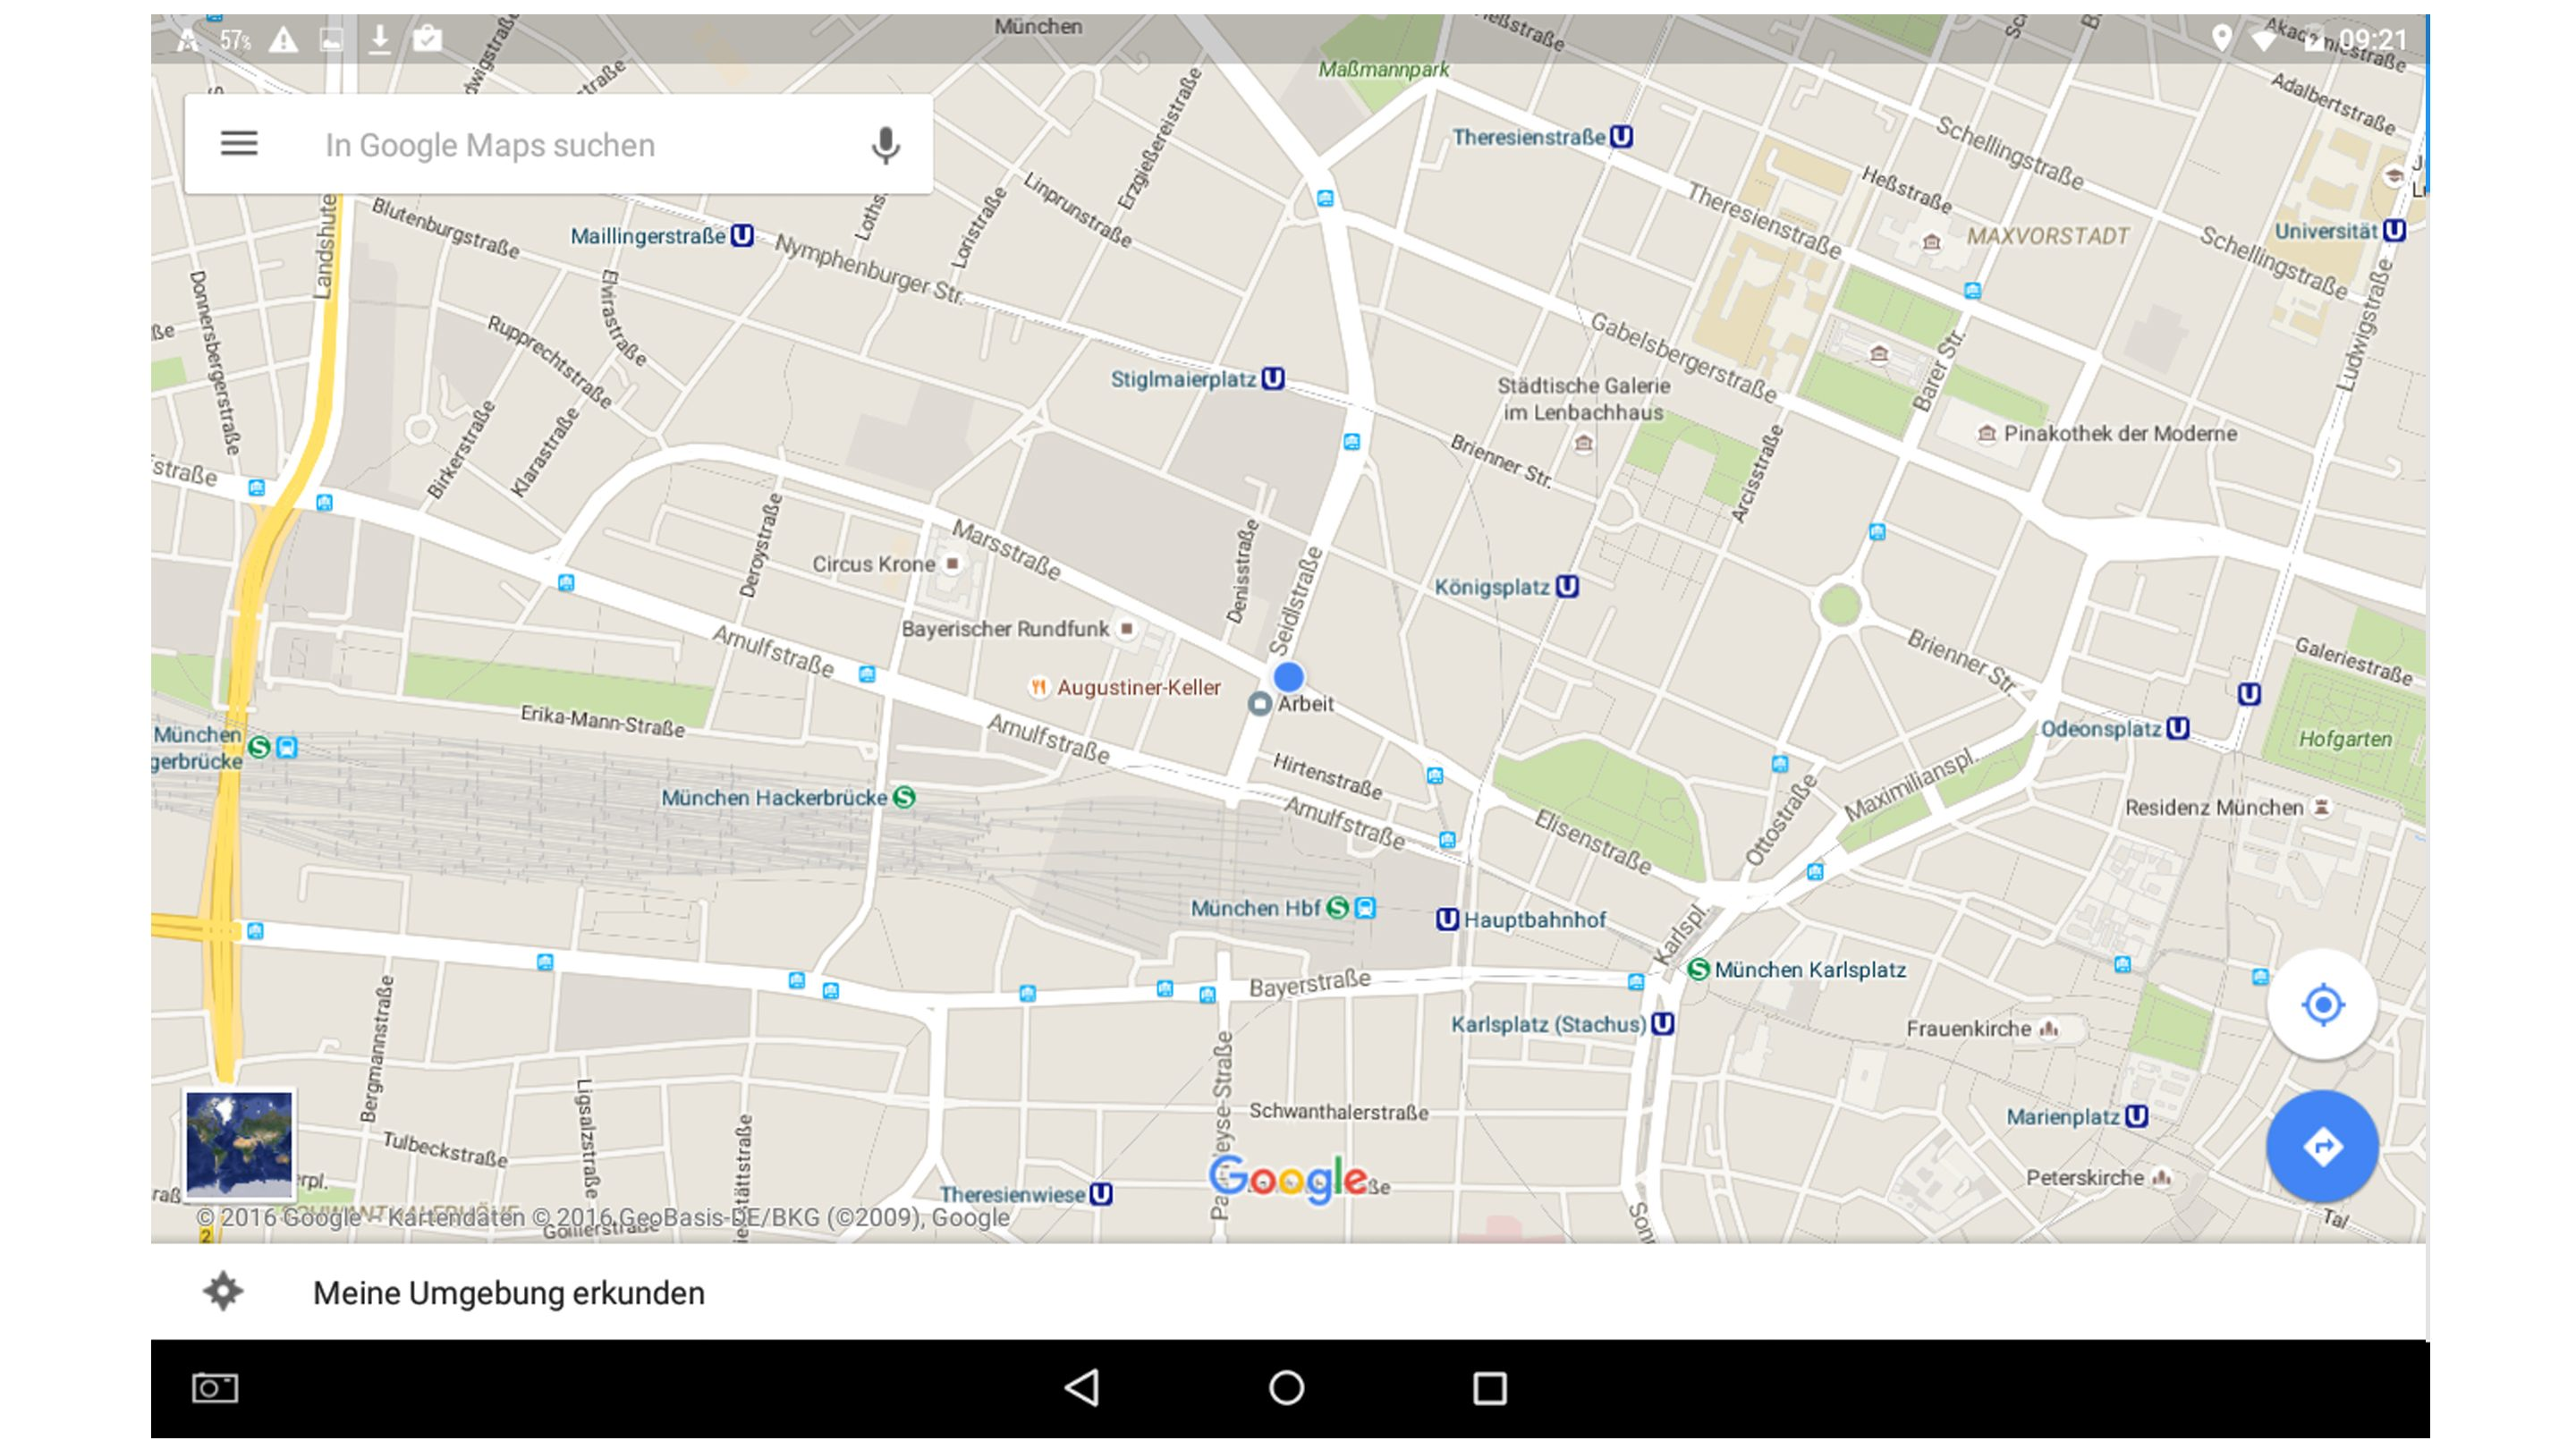 Point-of-View-TAB-I847—Anwendungen—Google-Maos